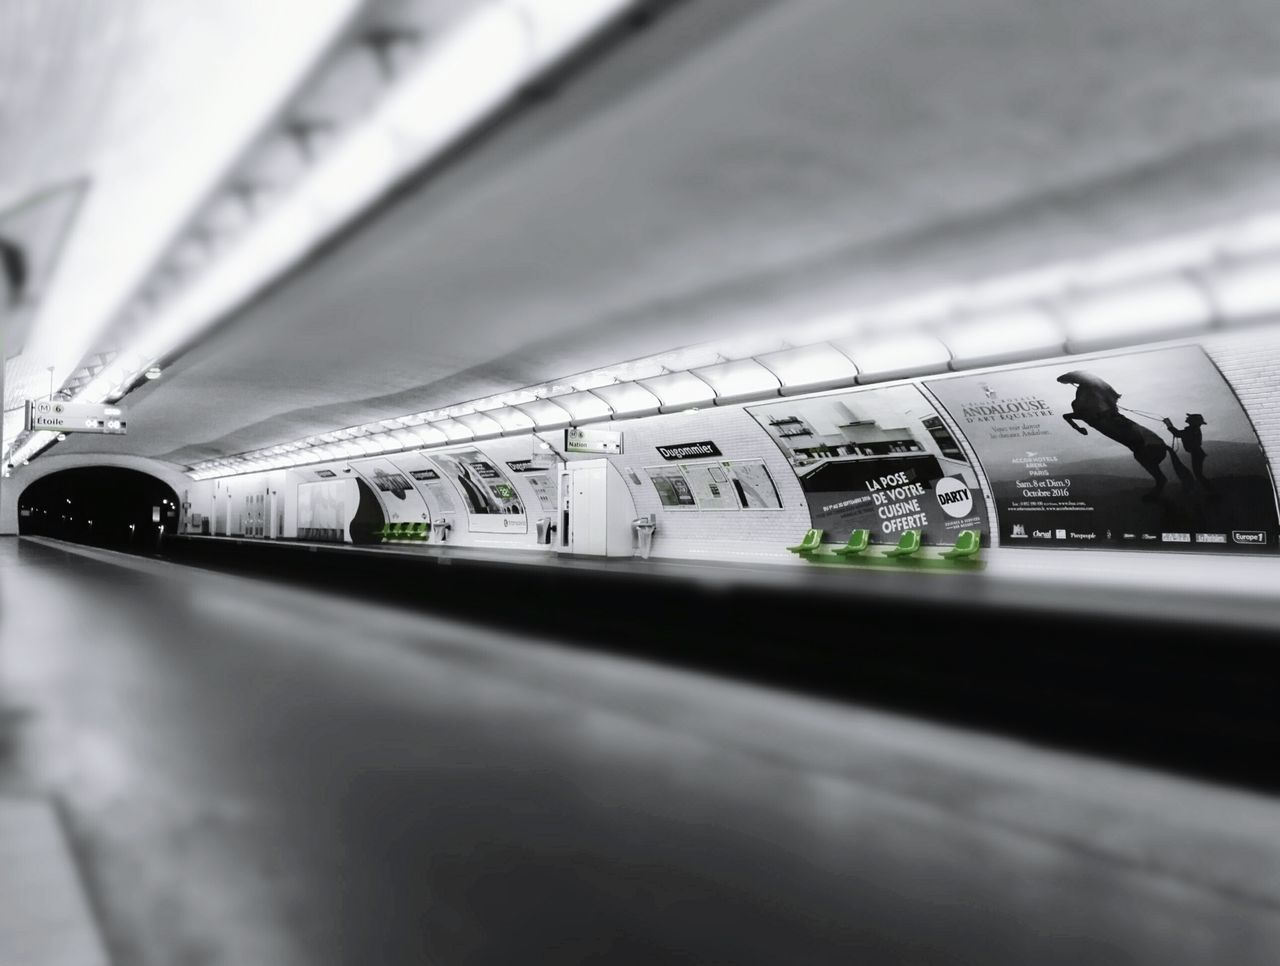 Subway Station Transportation Indoors  City Life Perspective No People Arch Lights Selective Focus Capital Cities  Green Paris, France  Honor7